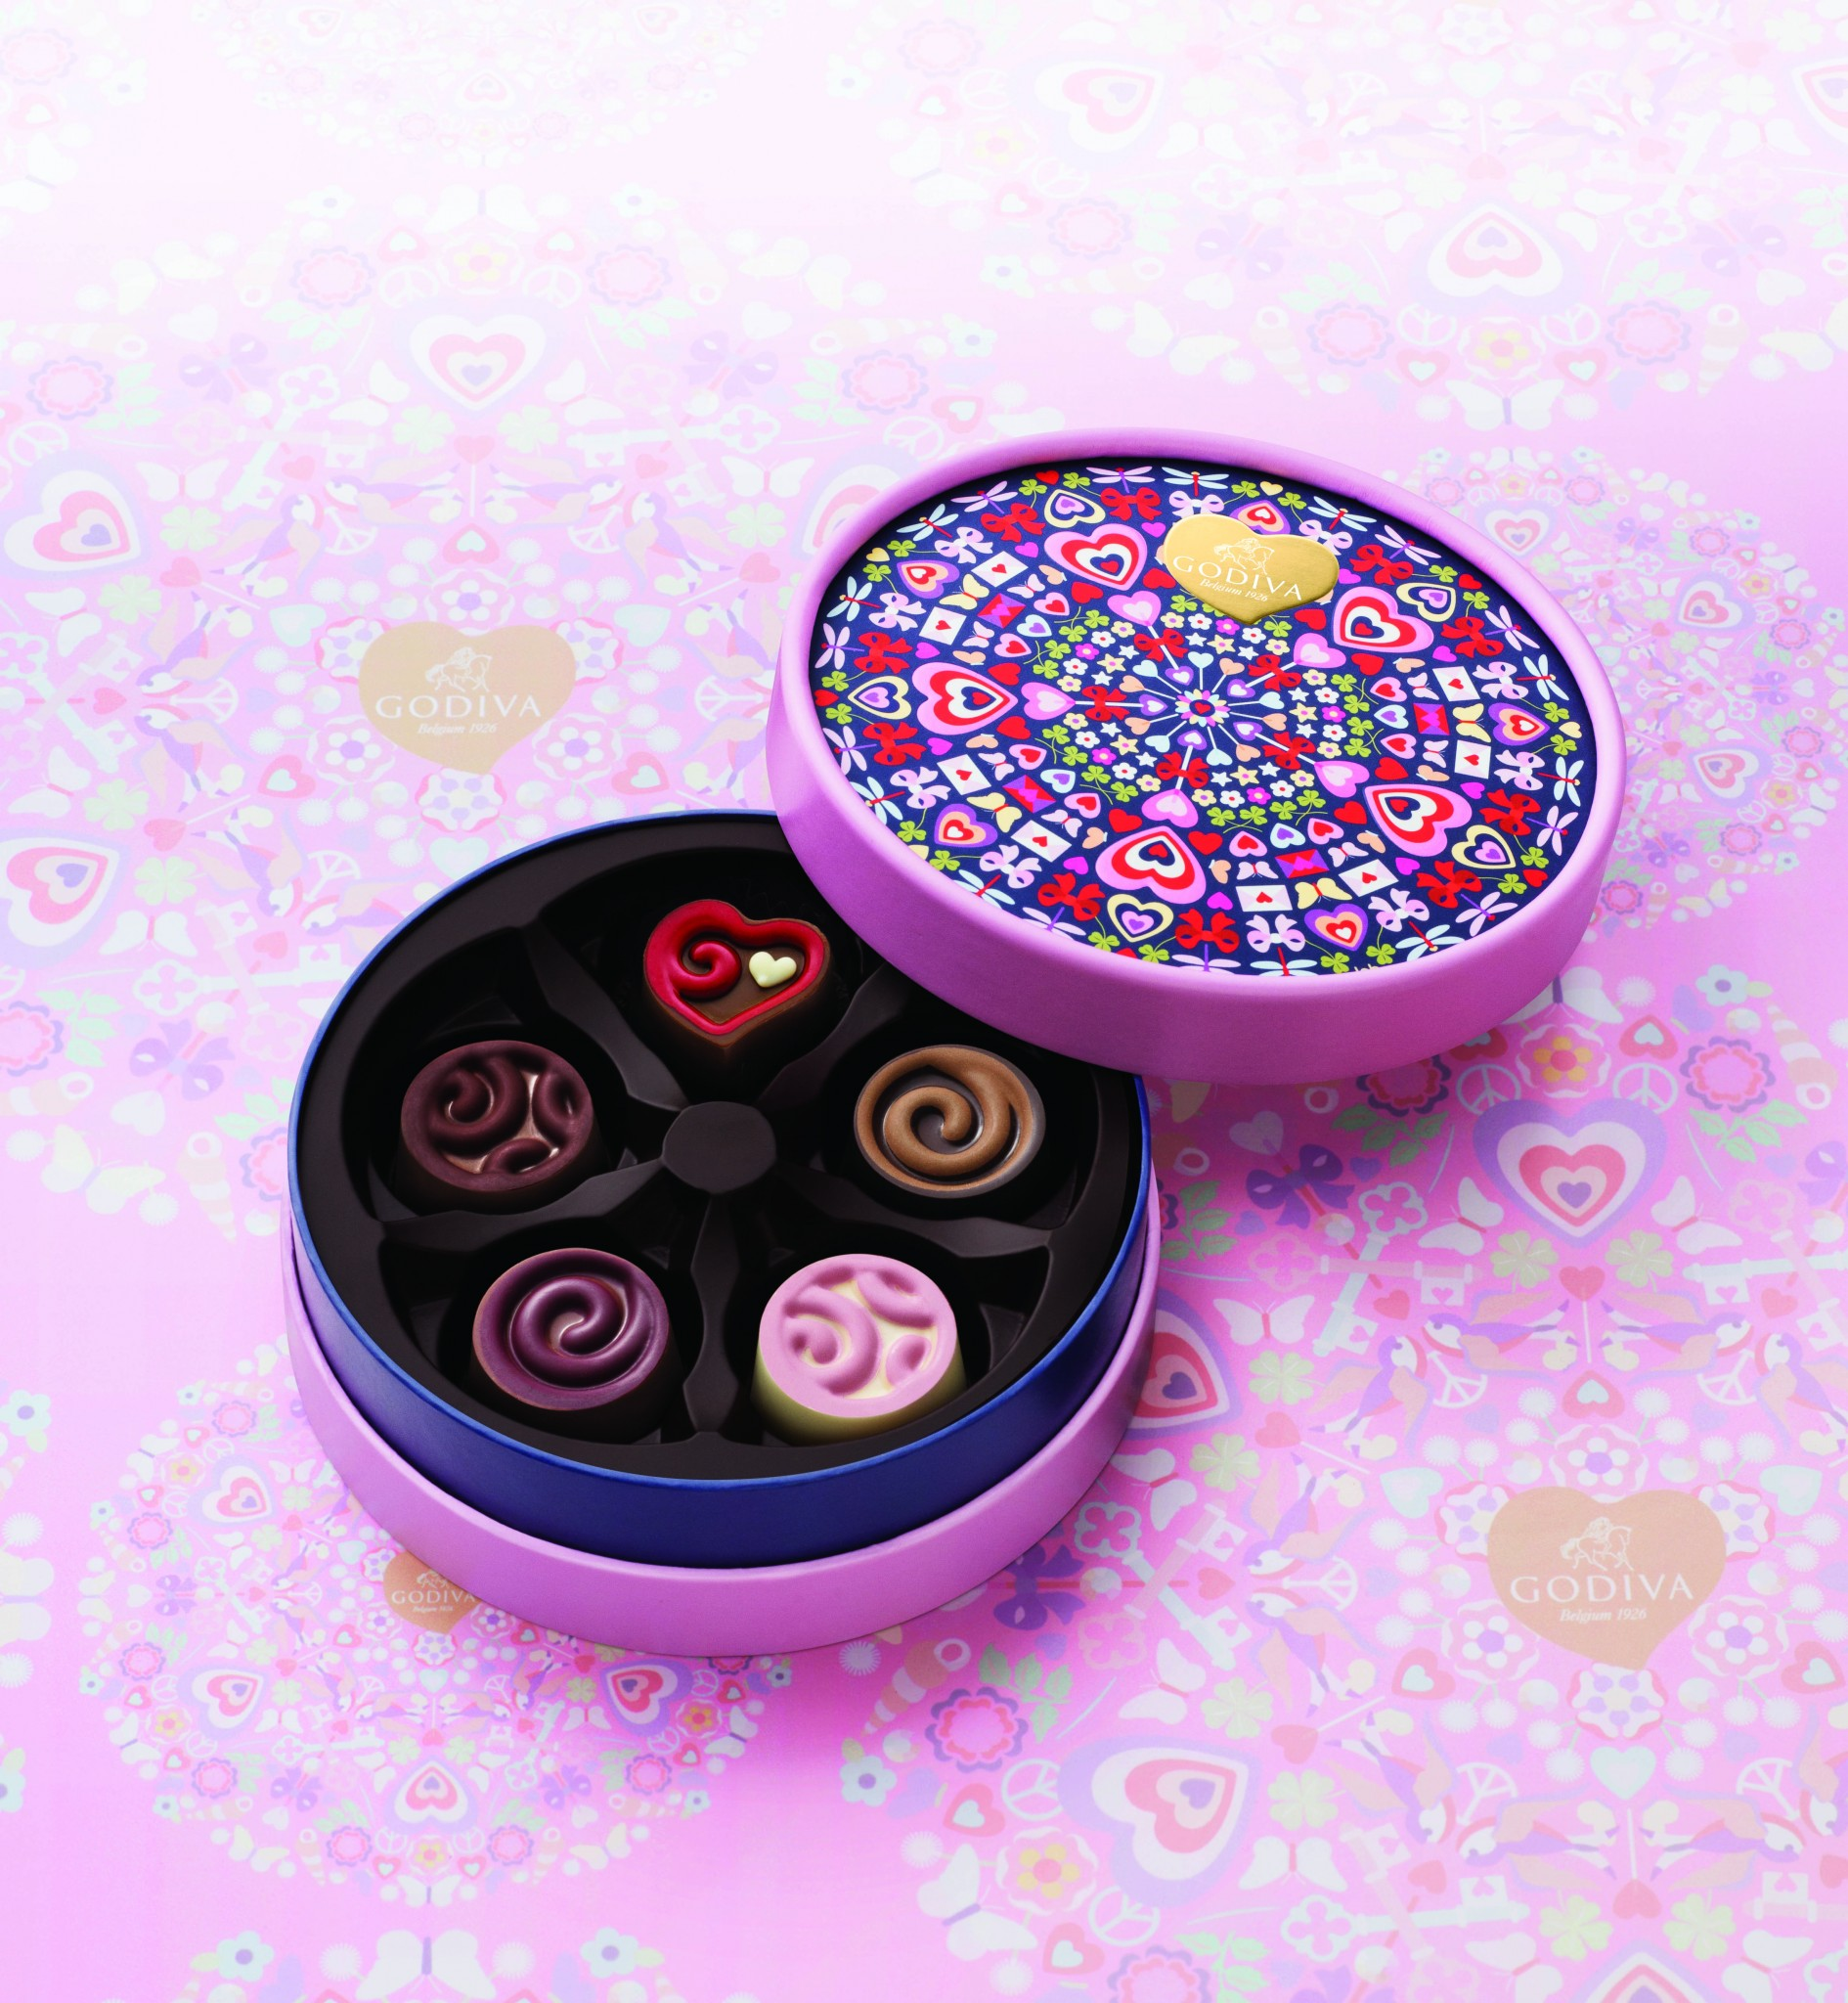 Valentines-Day-Chocolate-Round-Gift-Box-5pcs._open_with-lidbg